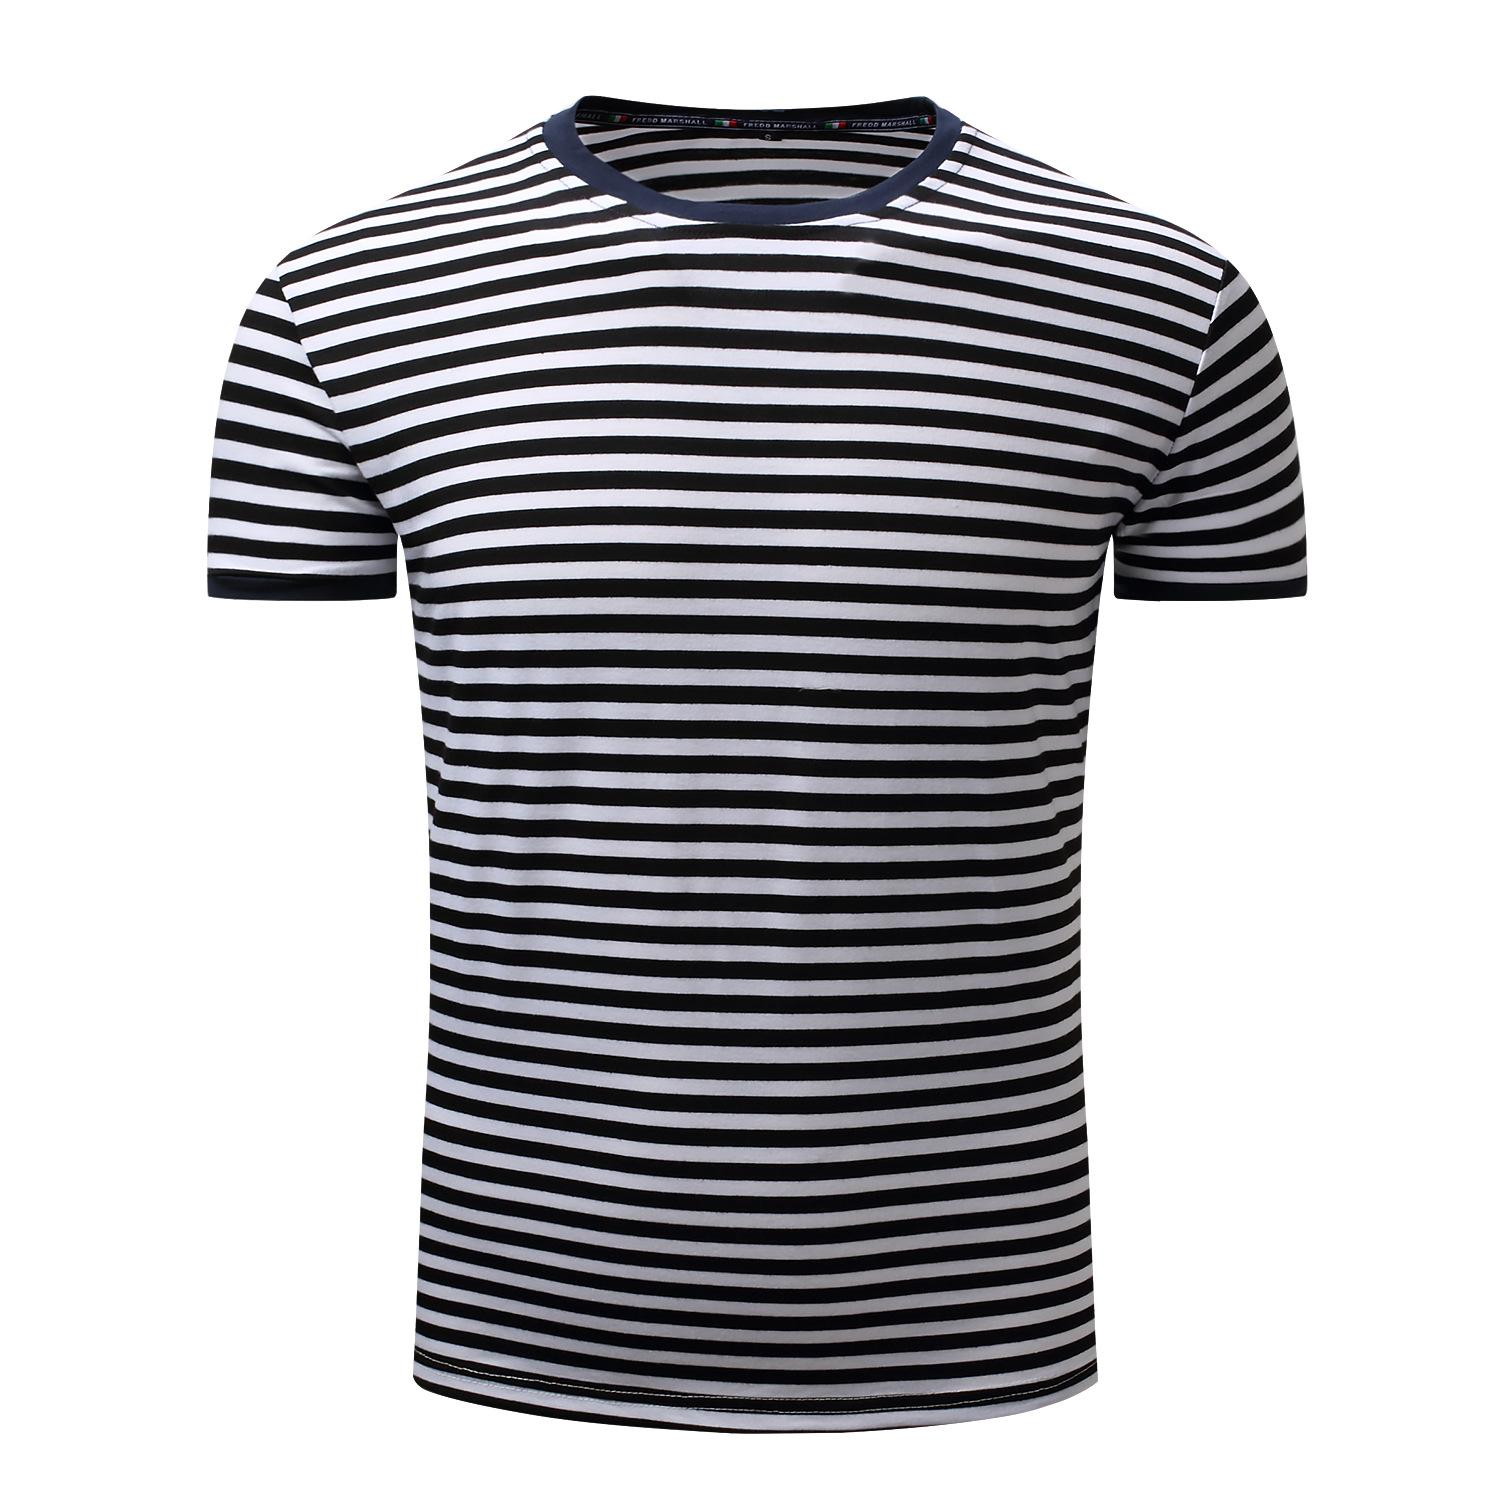 eb3eae8c838 New Spring And Summer Men S Short Sleeved T Shirt Pure Cotton Collarless Tee  Shirt For Sale Worlds Funniest T Shirts From Minglian1233